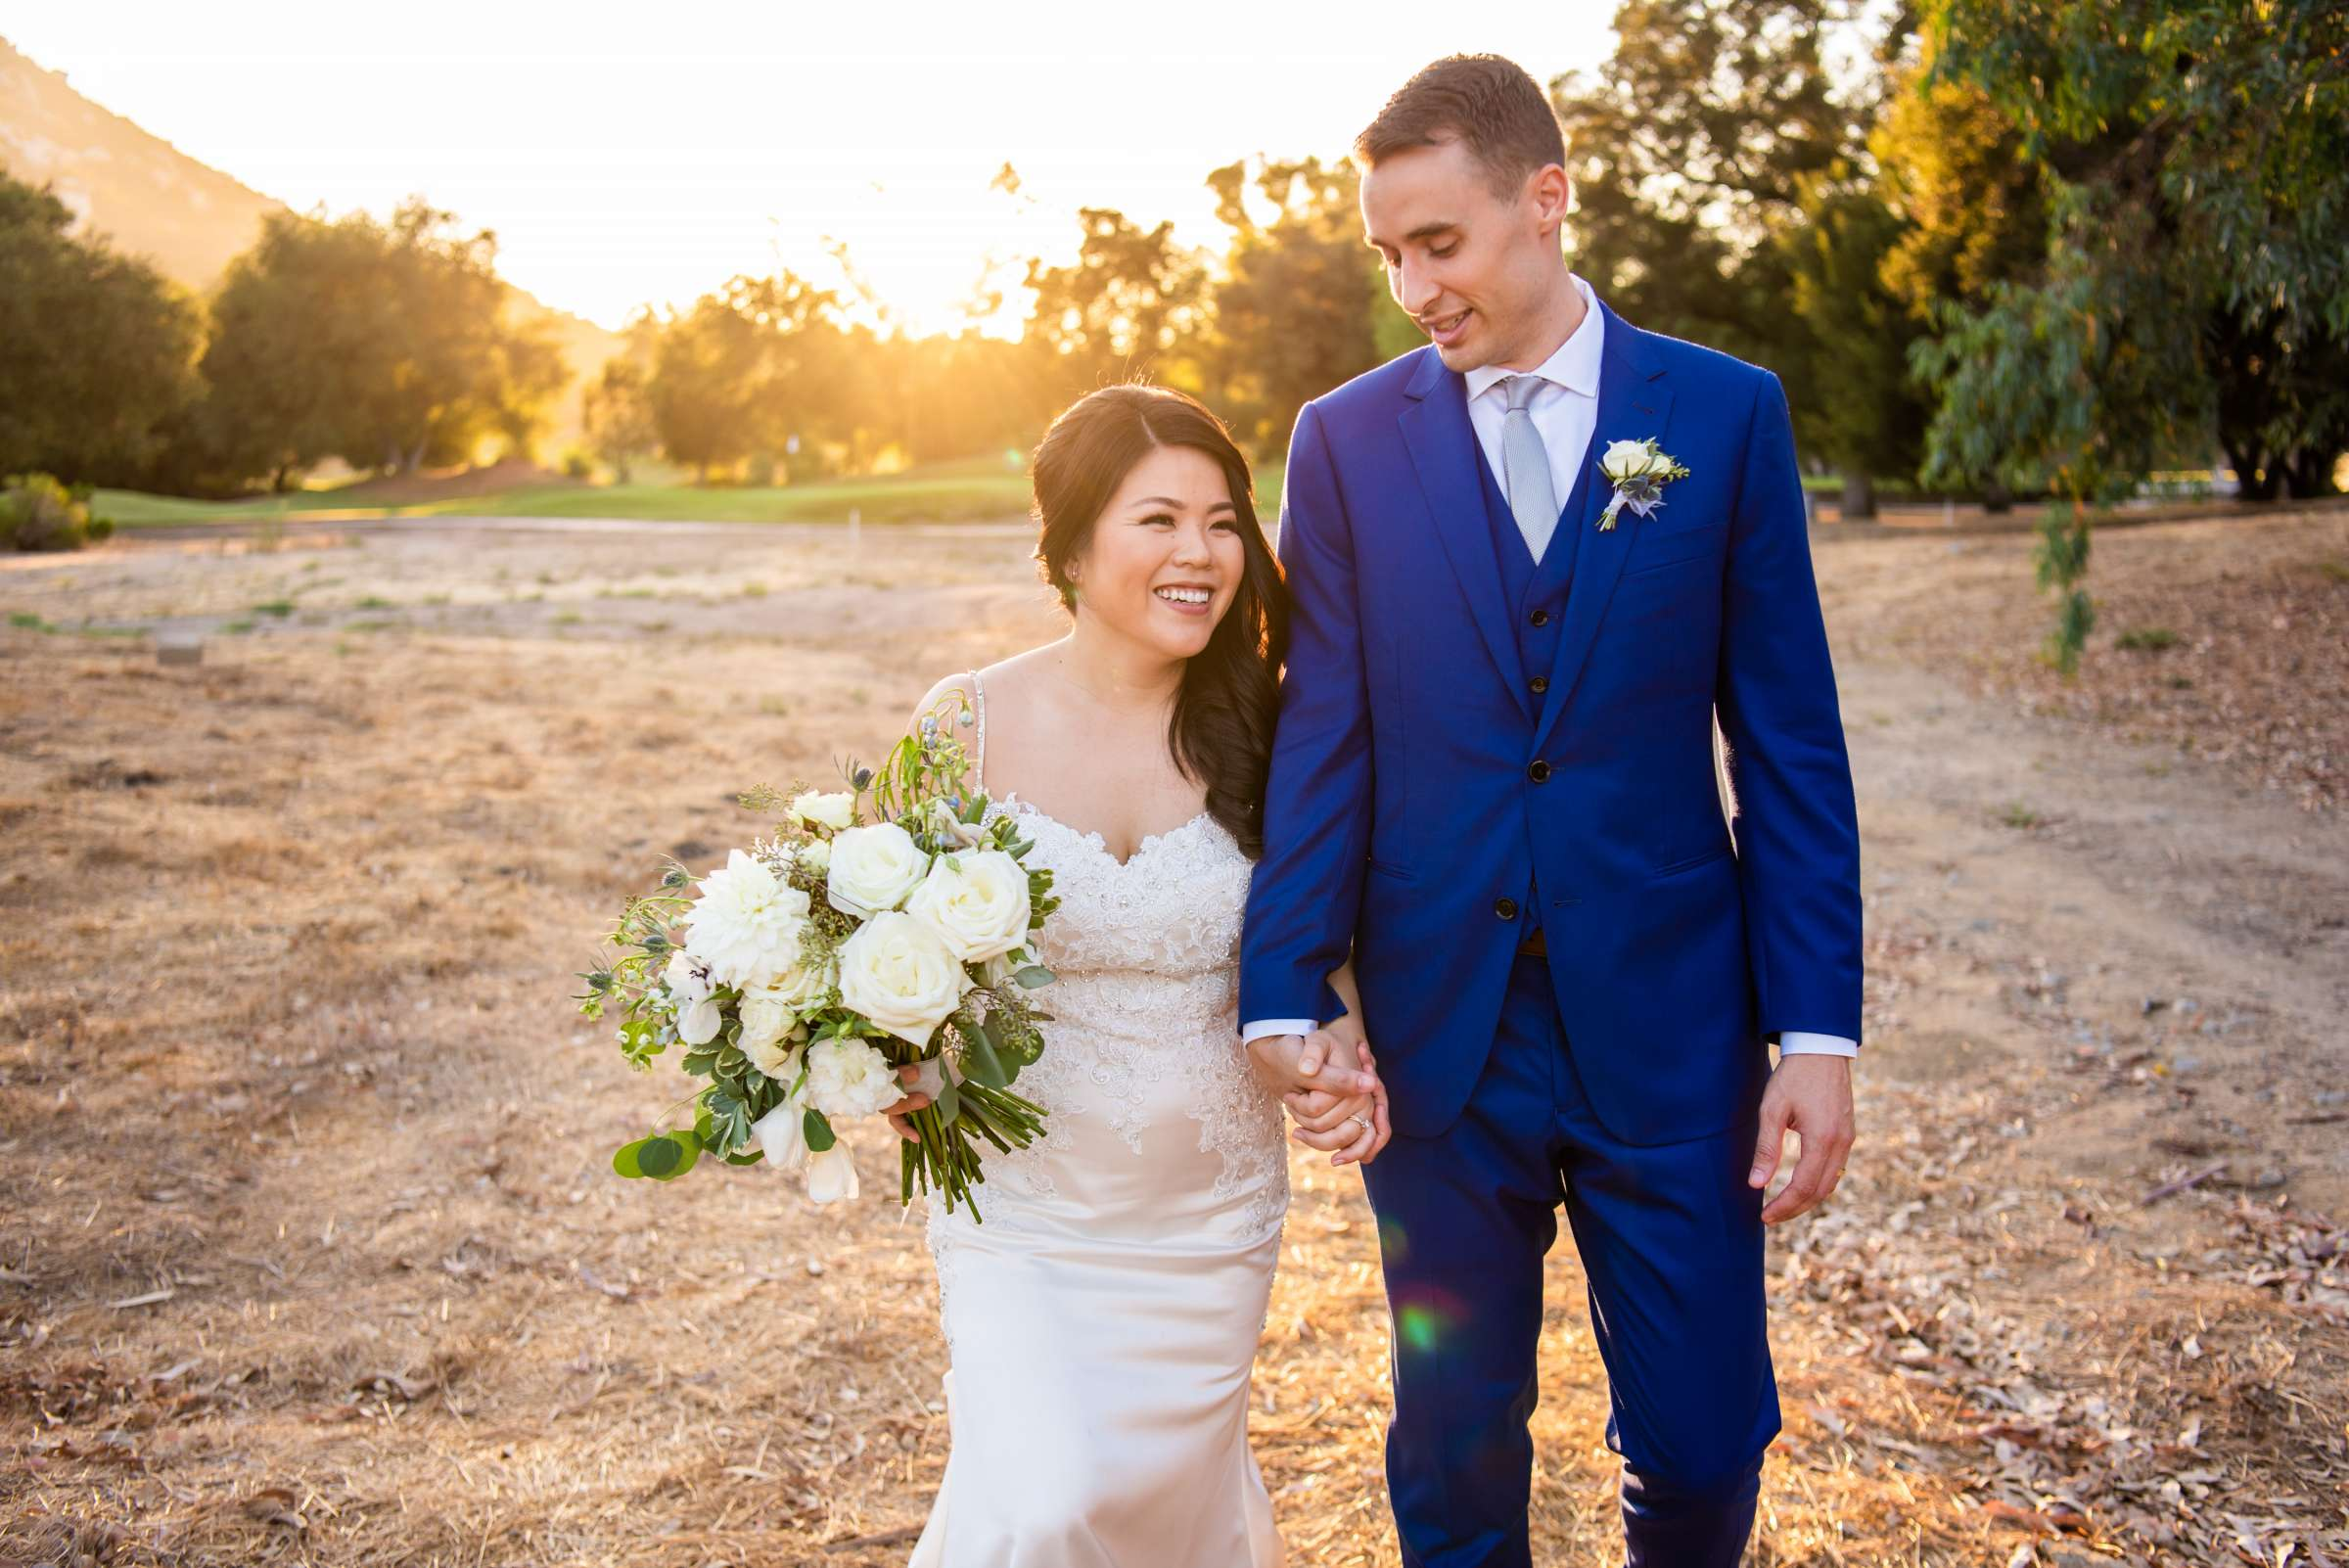 Mt Woodson Castle Wedding coordinated by I Do Weddings, Aya and Jared Wedding Photo #486996 by True Photography